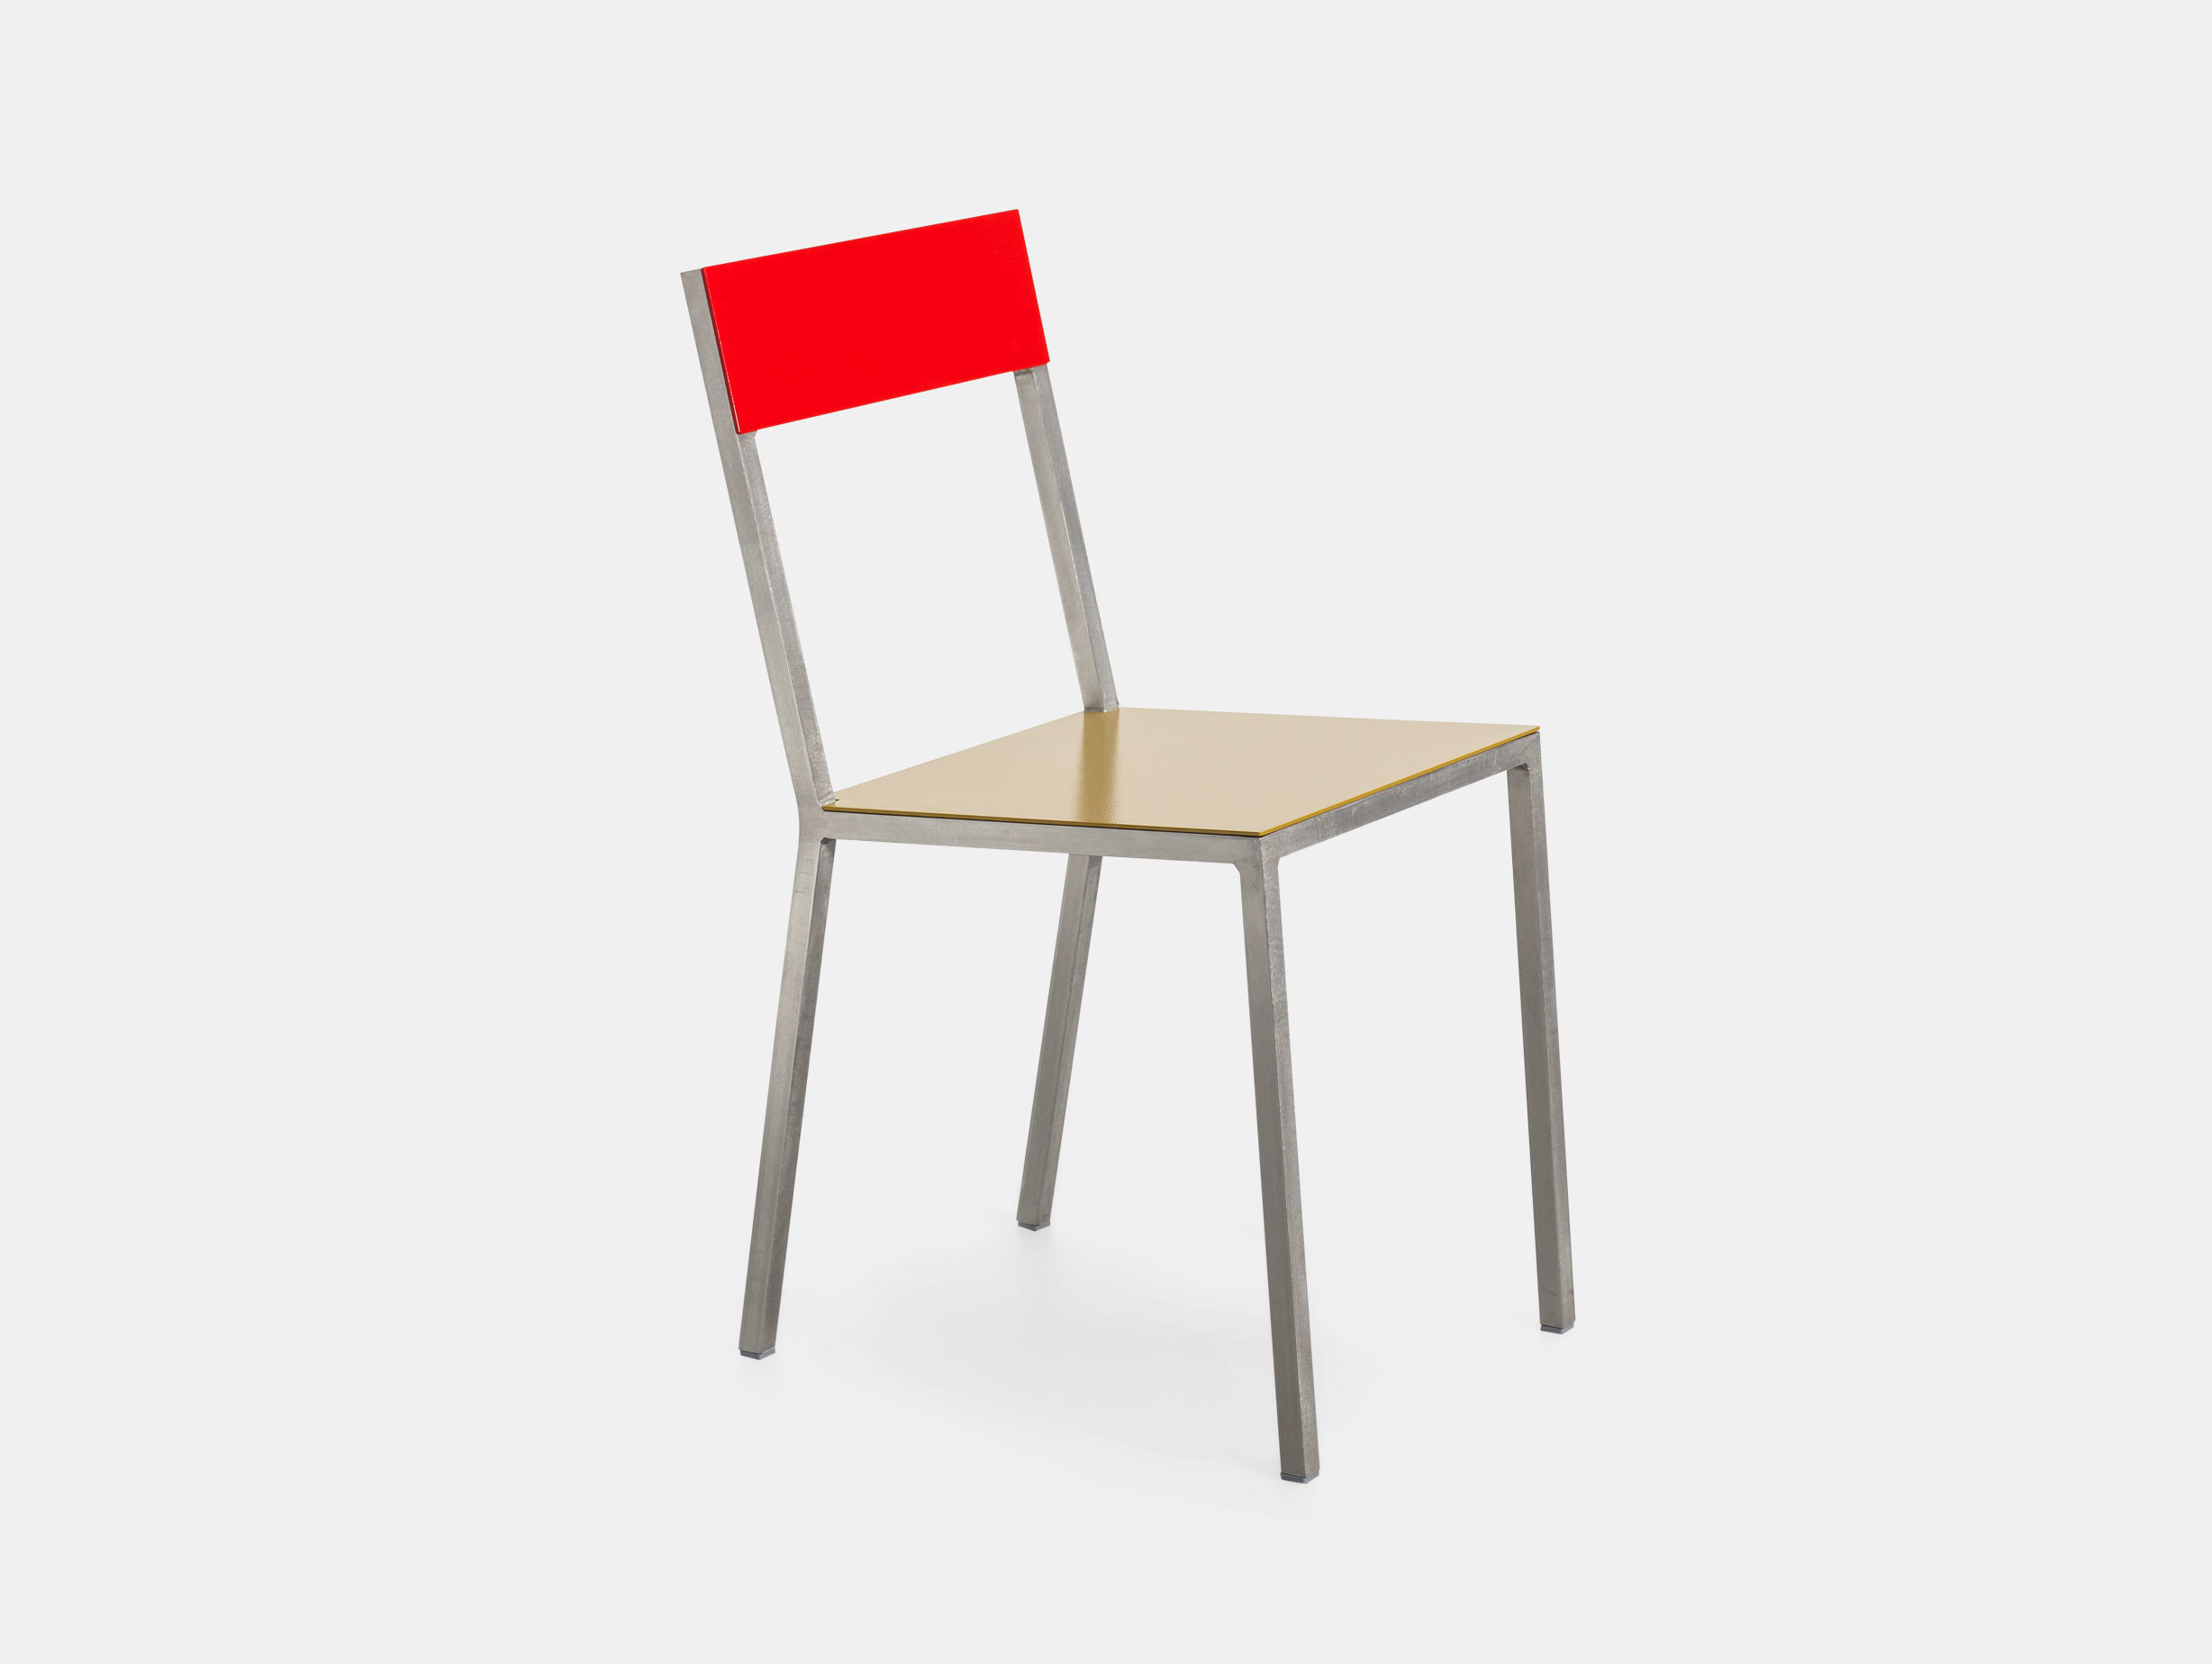 Valerie Objects Alu Chair Red Curry Muller Van Severen